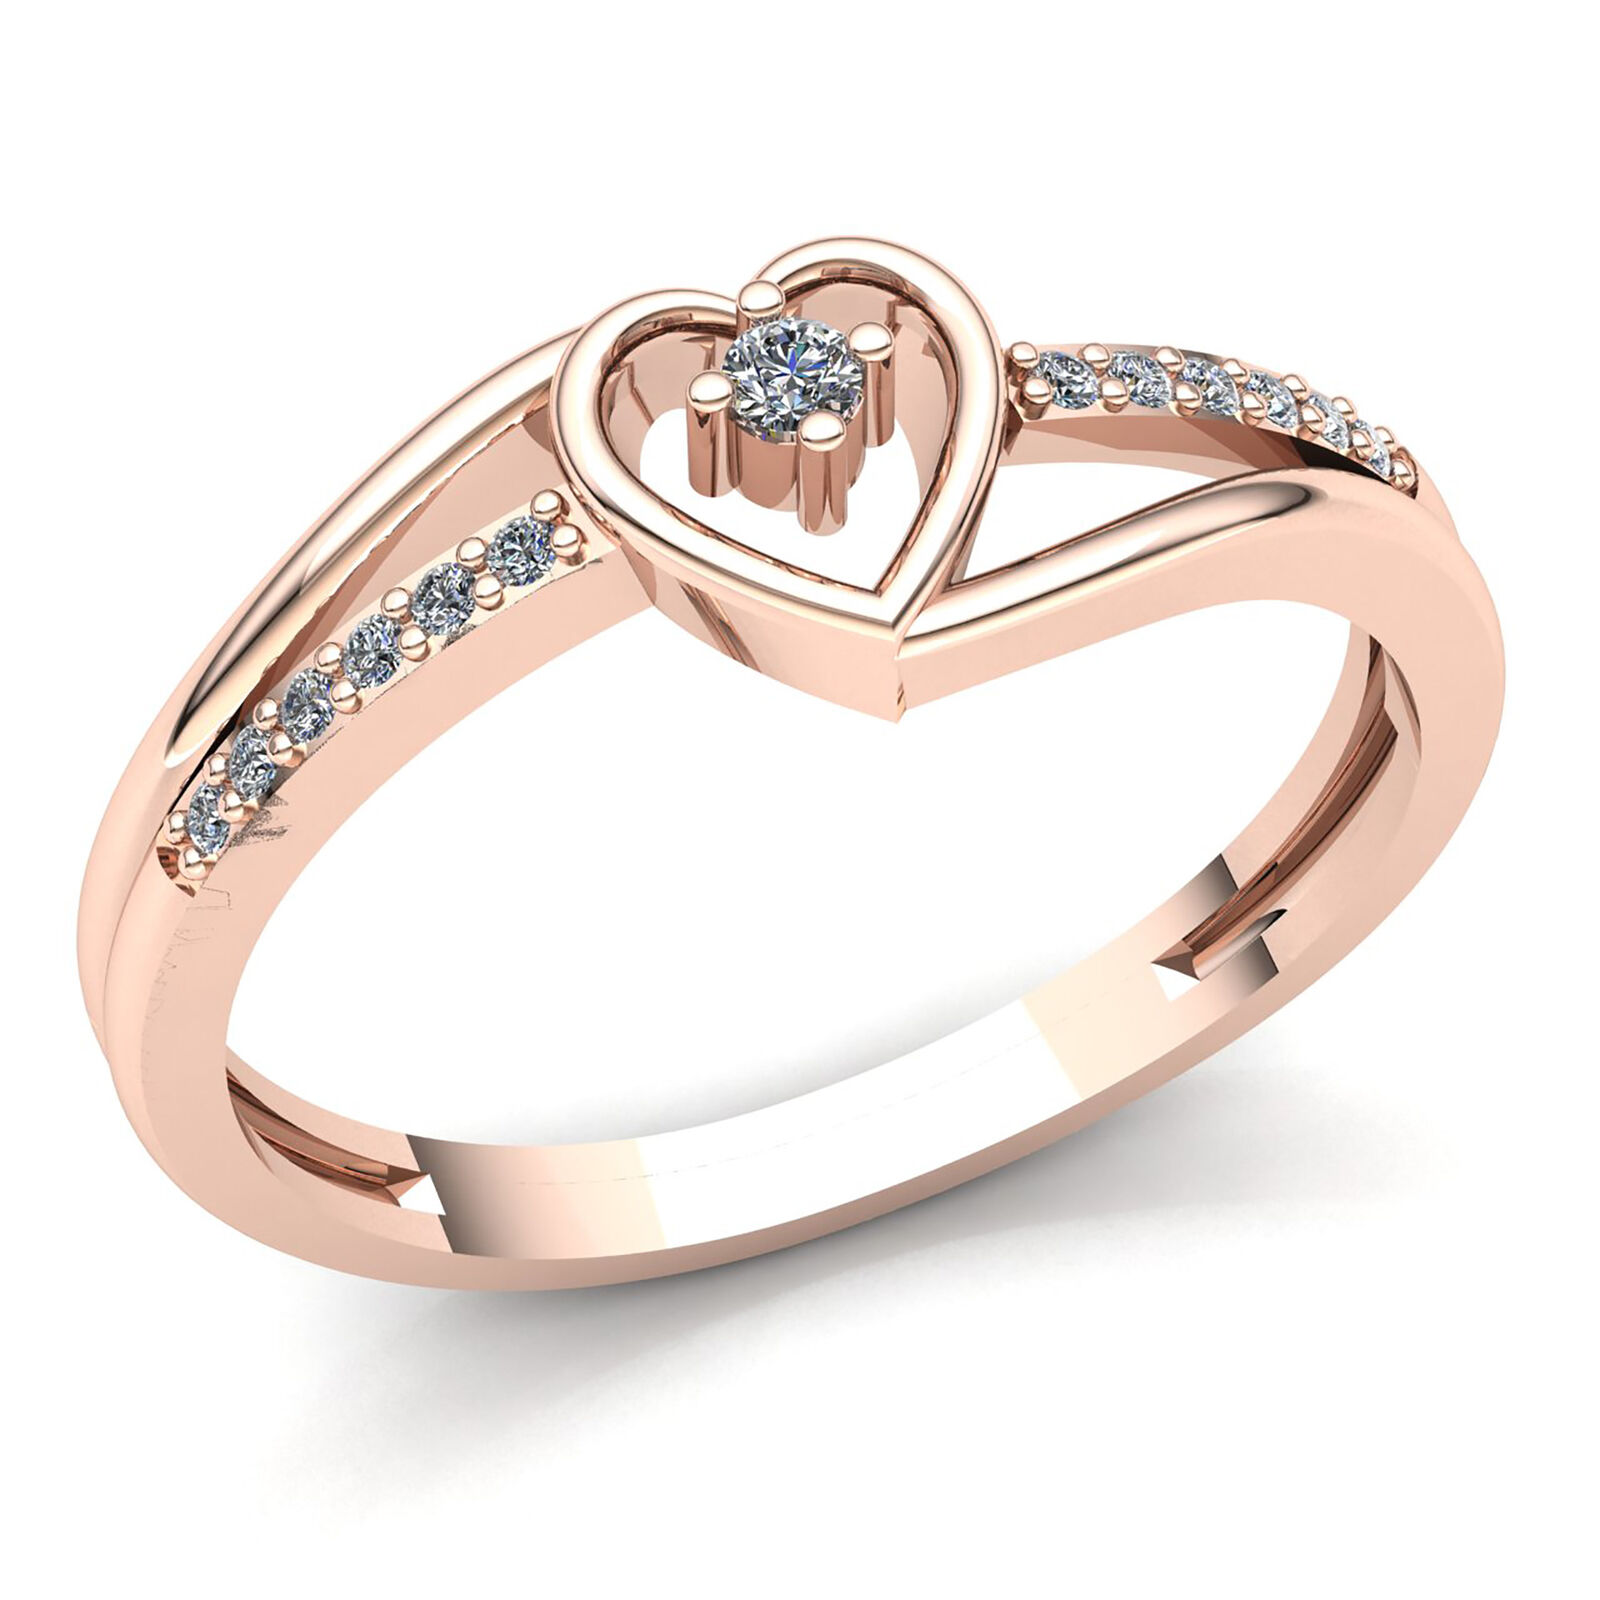 1ct Round Cut Diamond Ladies Twisted Heart Bypass Engagement Ring 10K gold